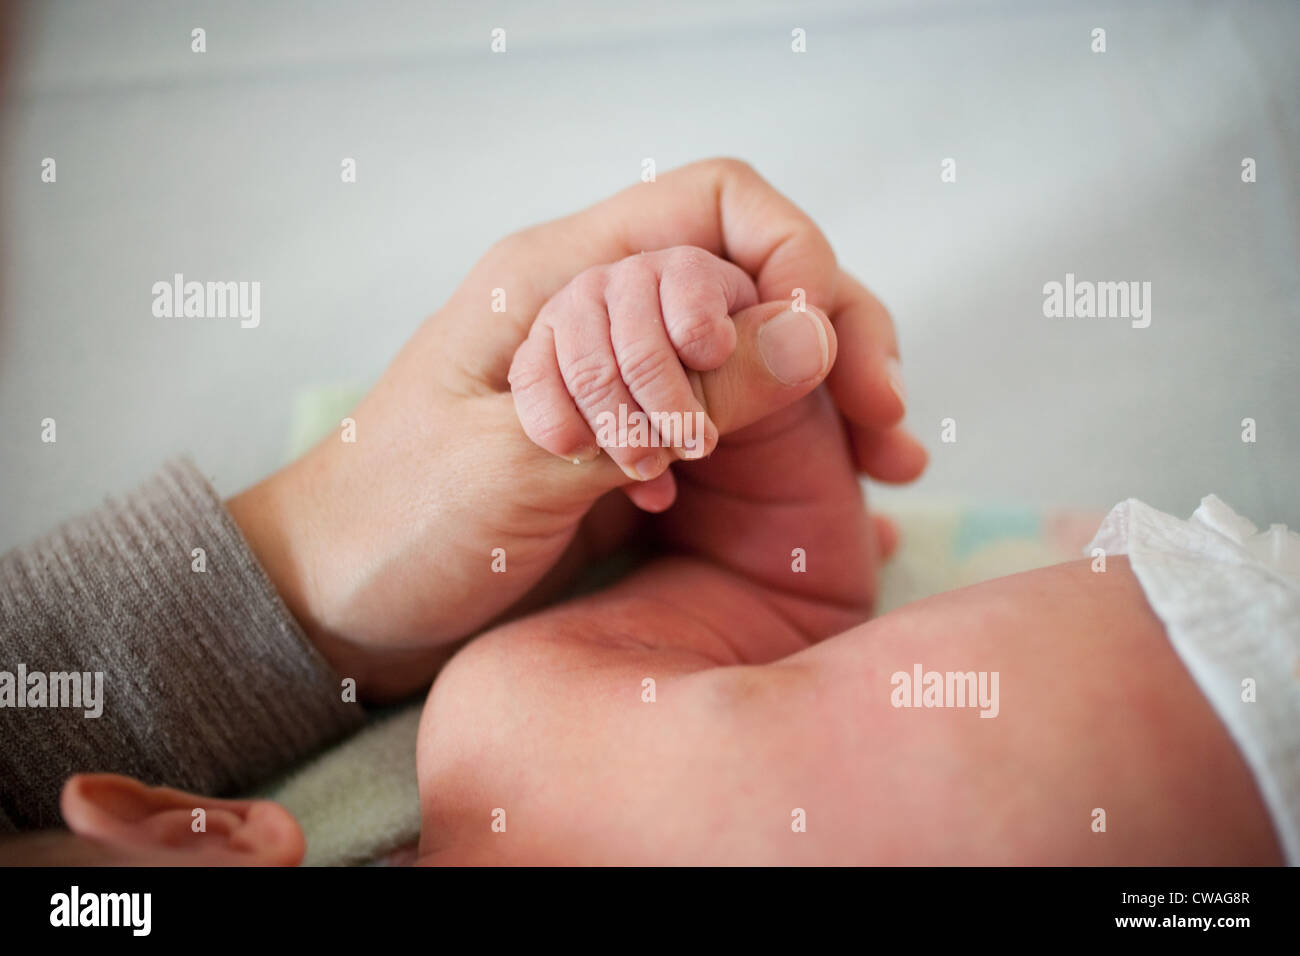 Mother holding newborn baby's hand - Stock Image